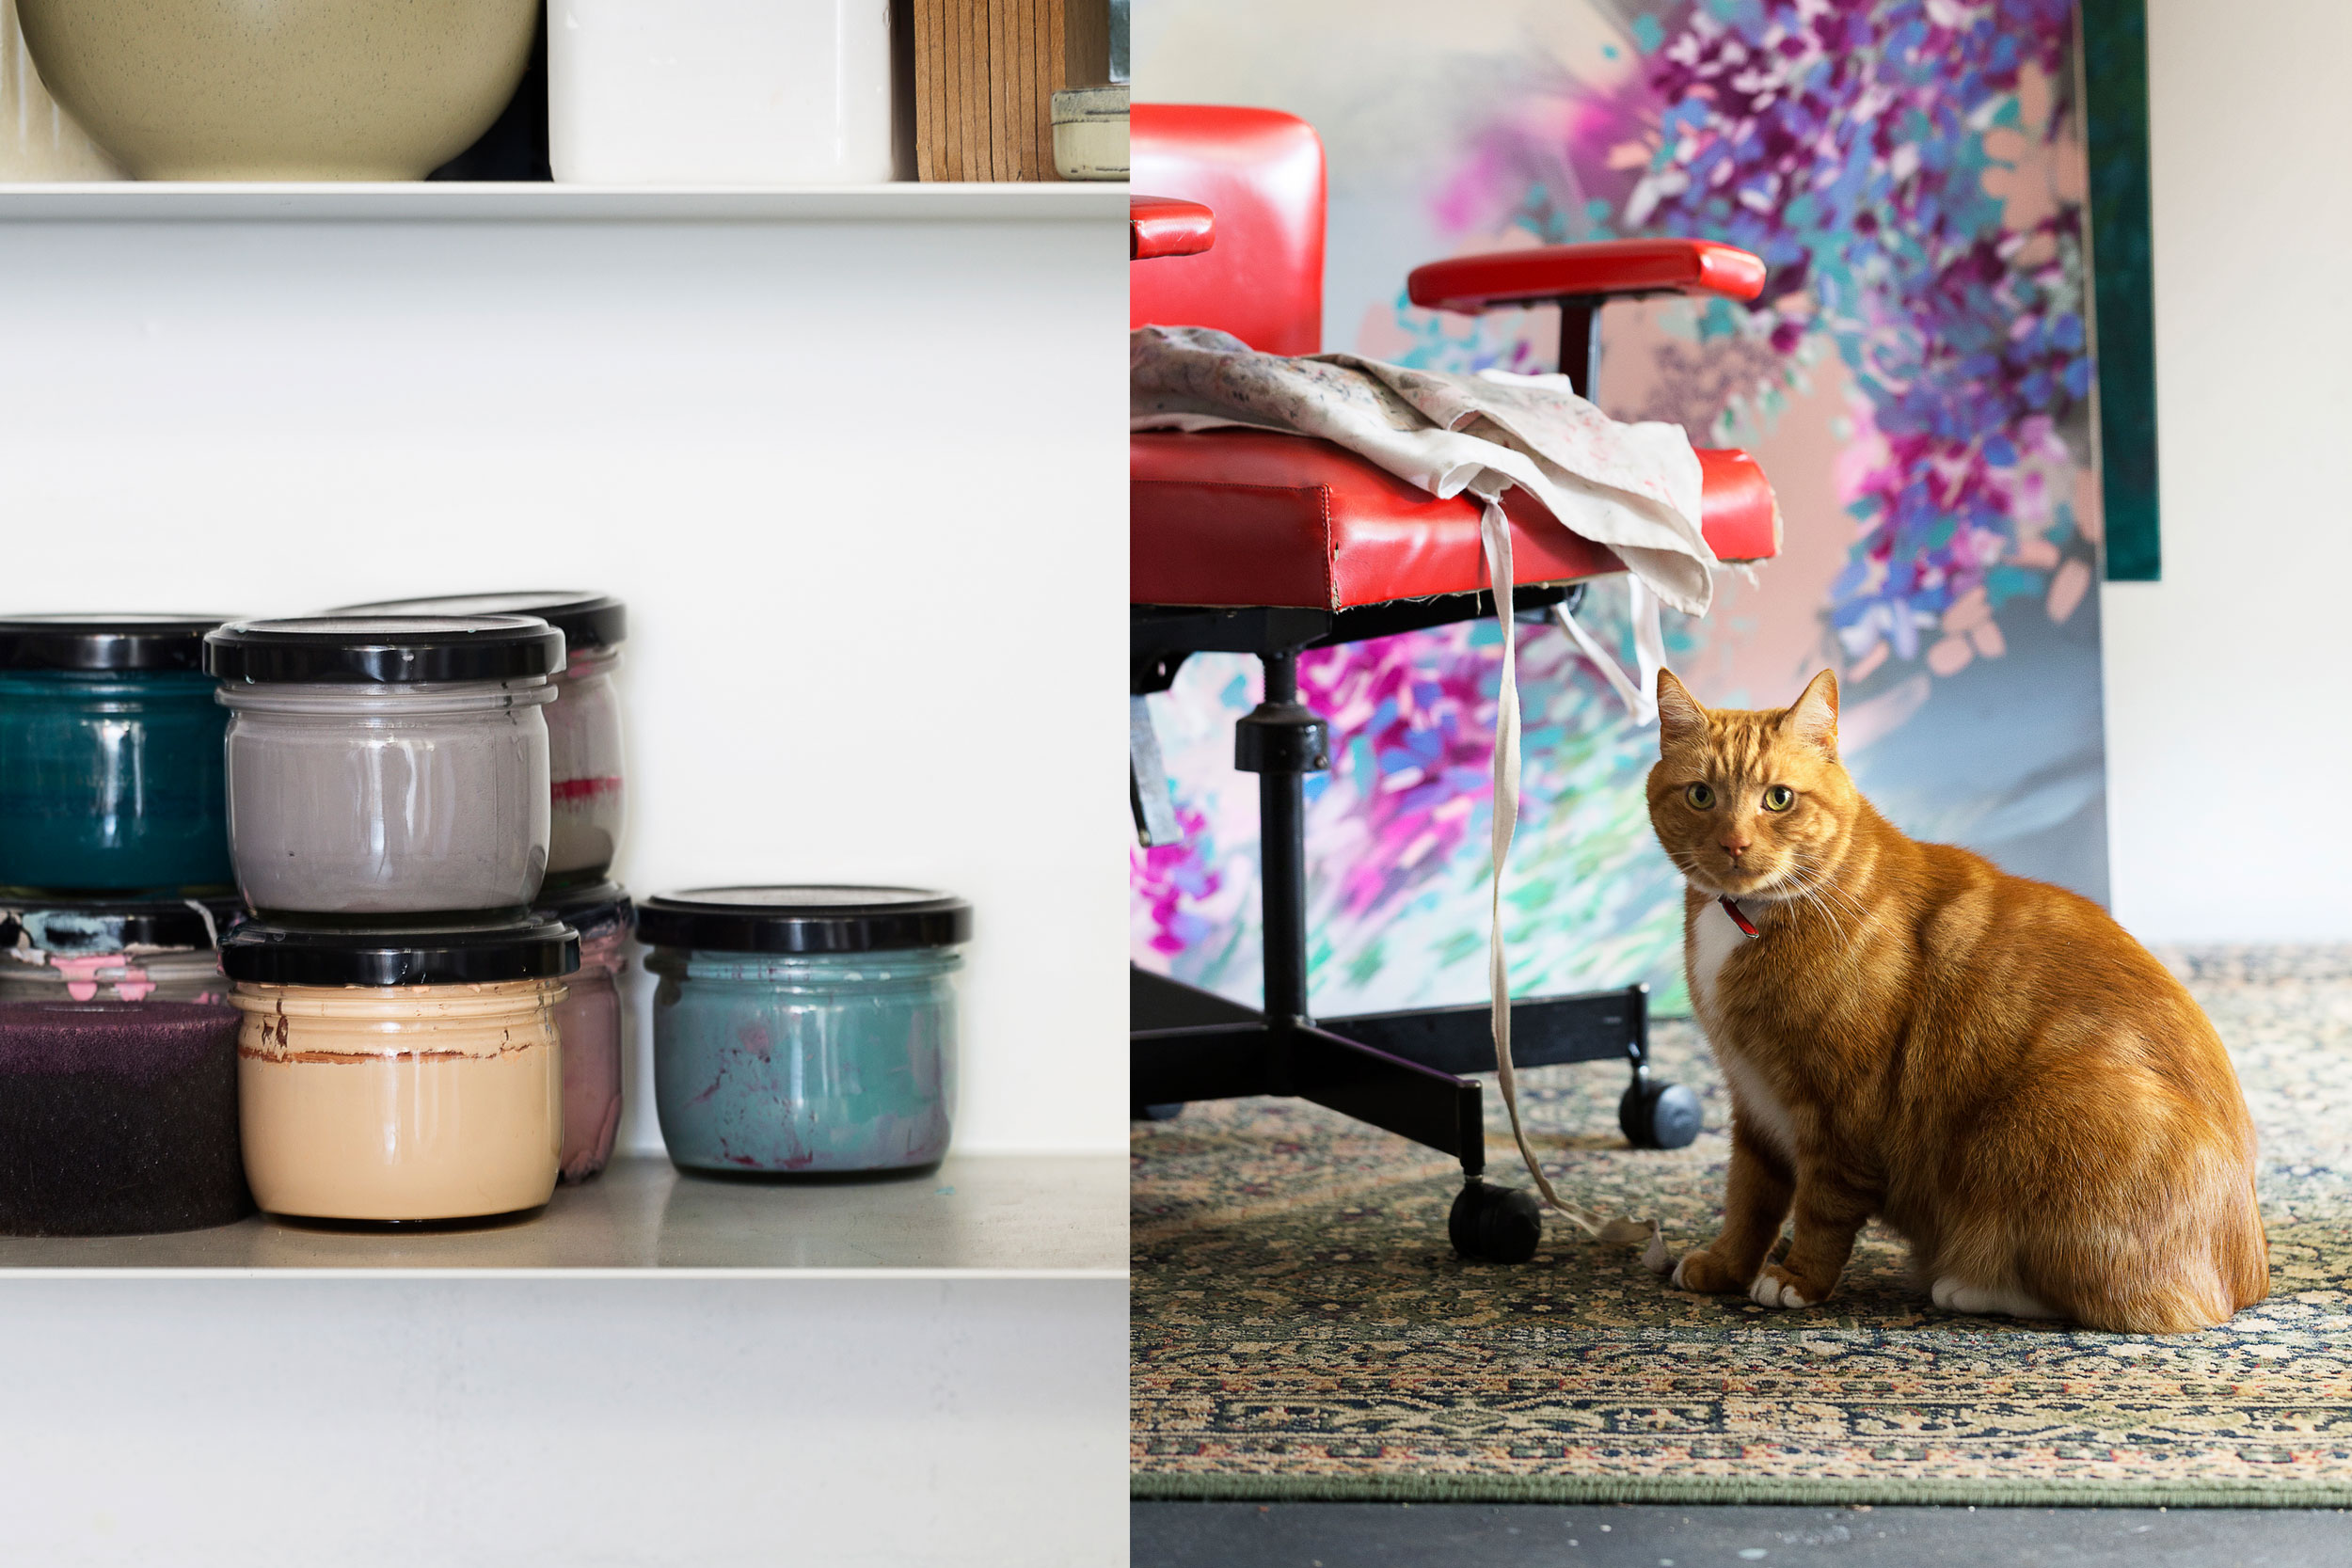 Studio detail and cat portrait.